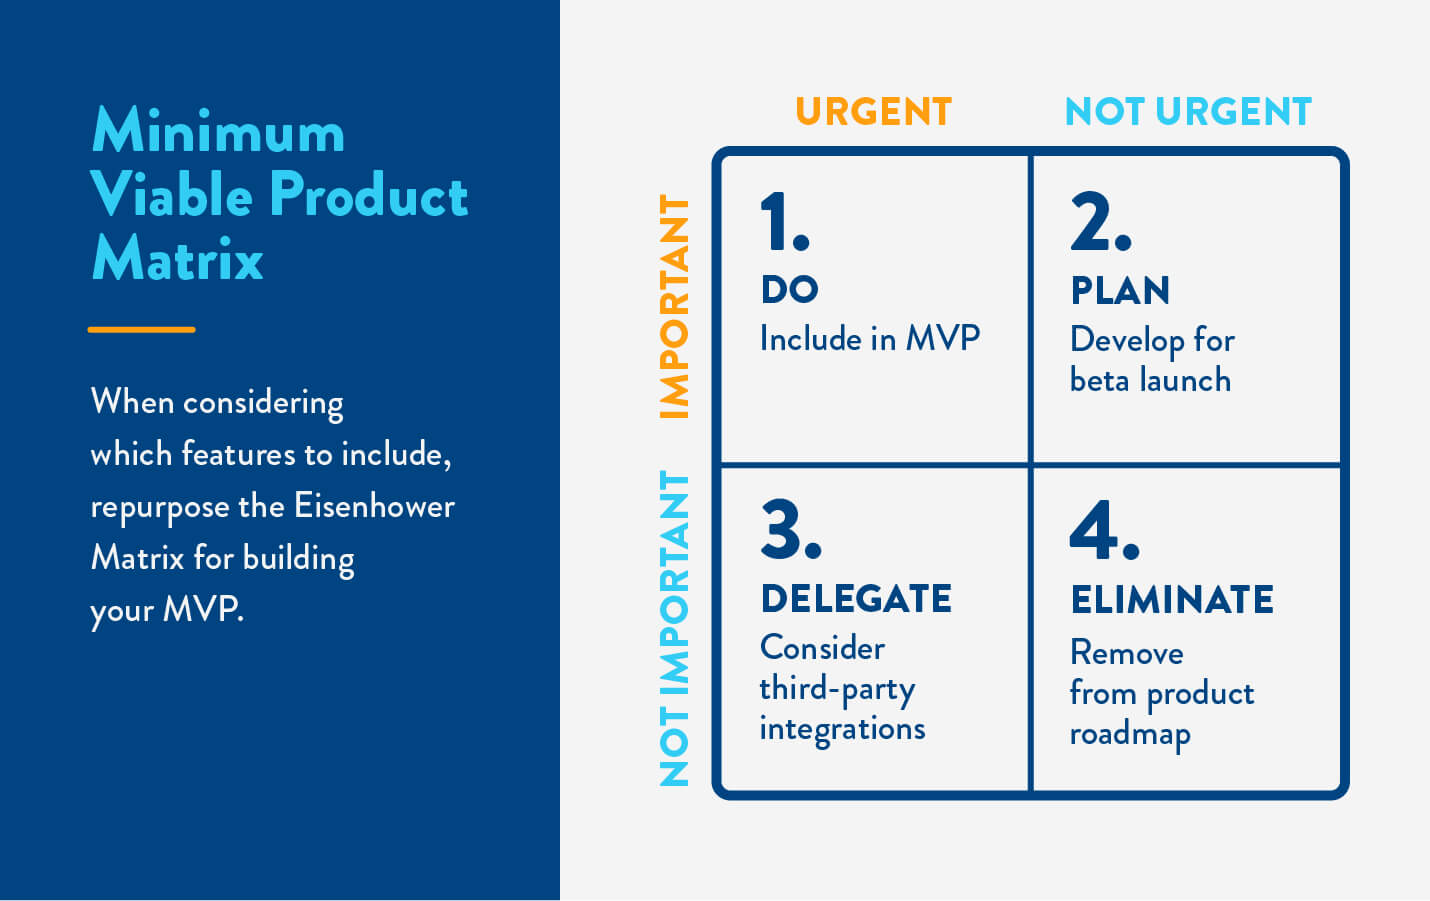 eisenhower matrix framework for building minimum viable products